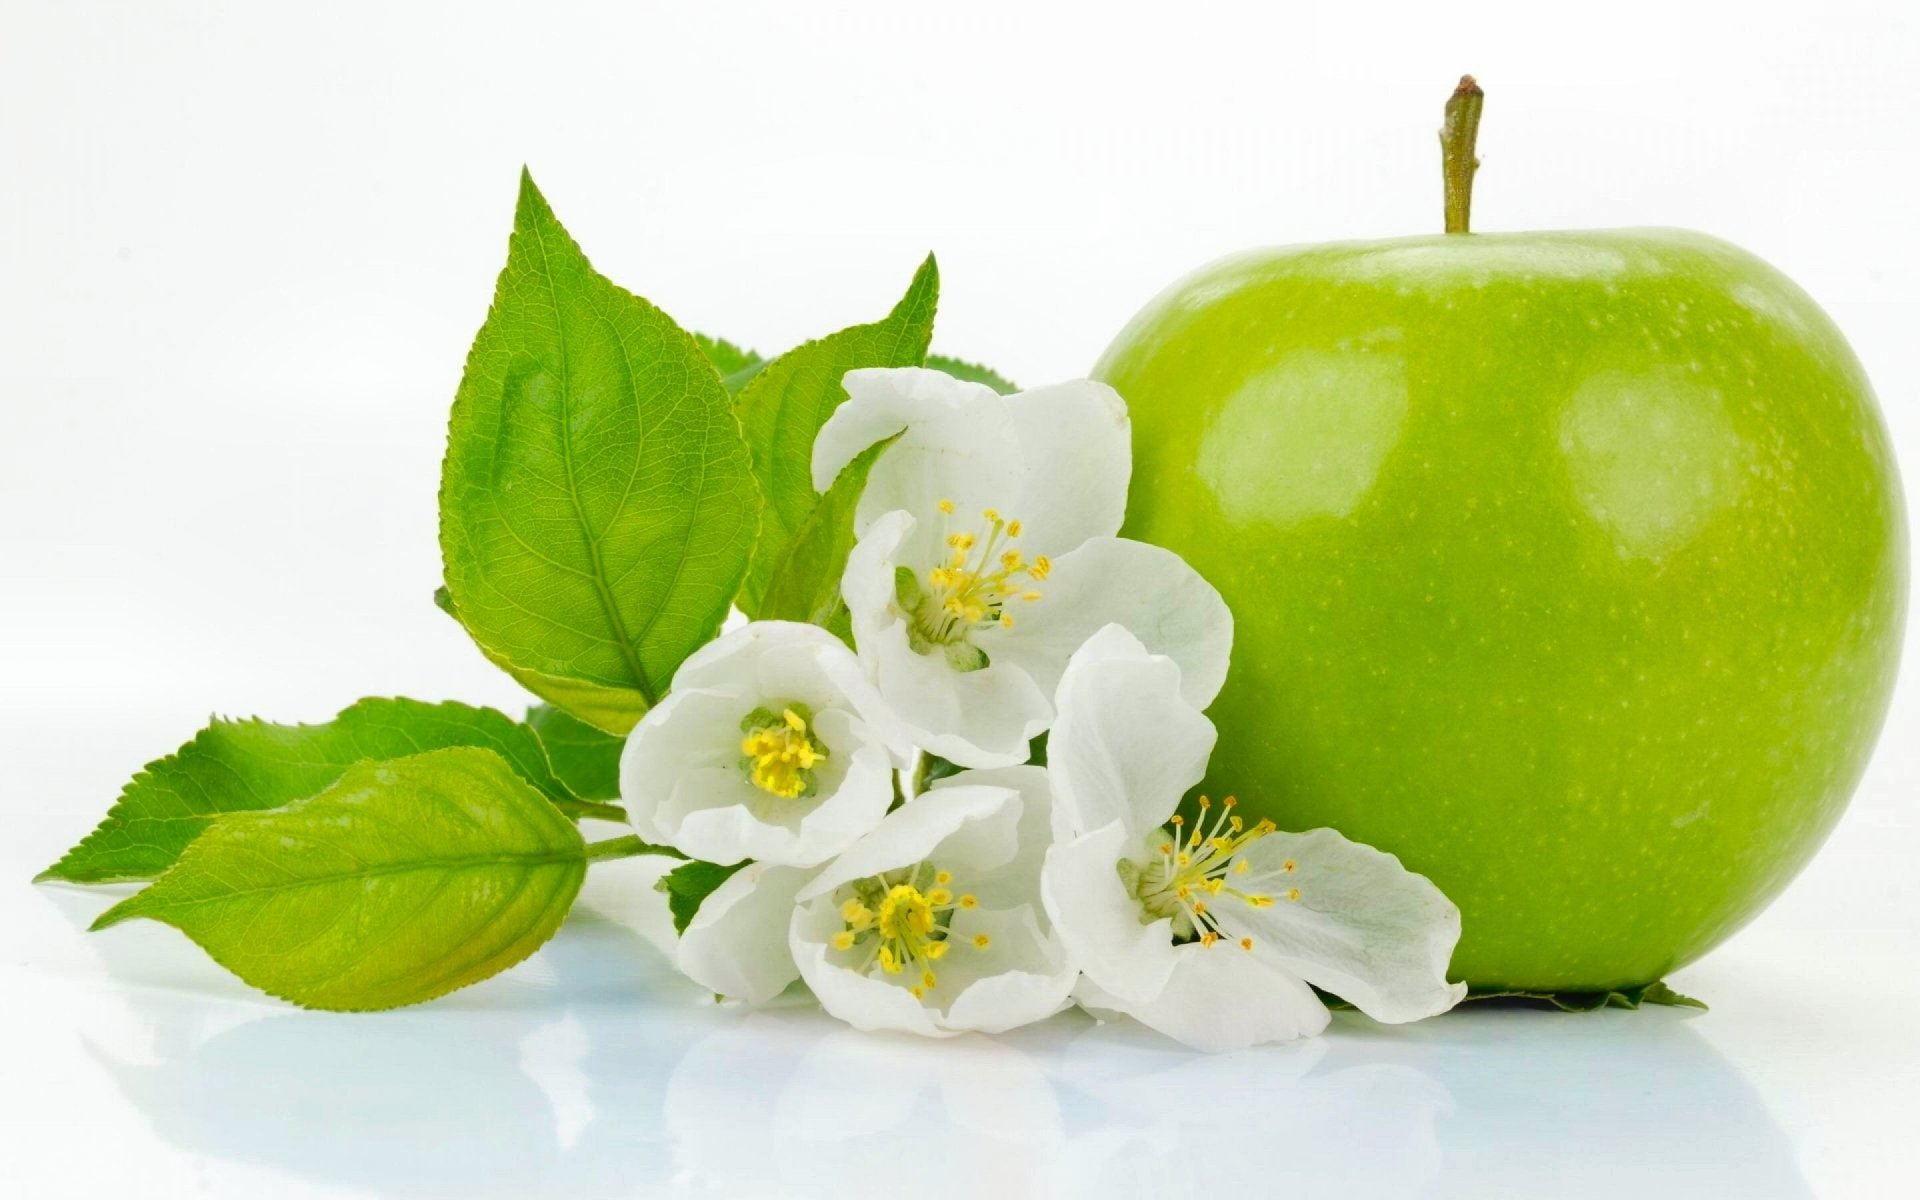 Food - Apple  Green Flower Nature Food Wallpaper